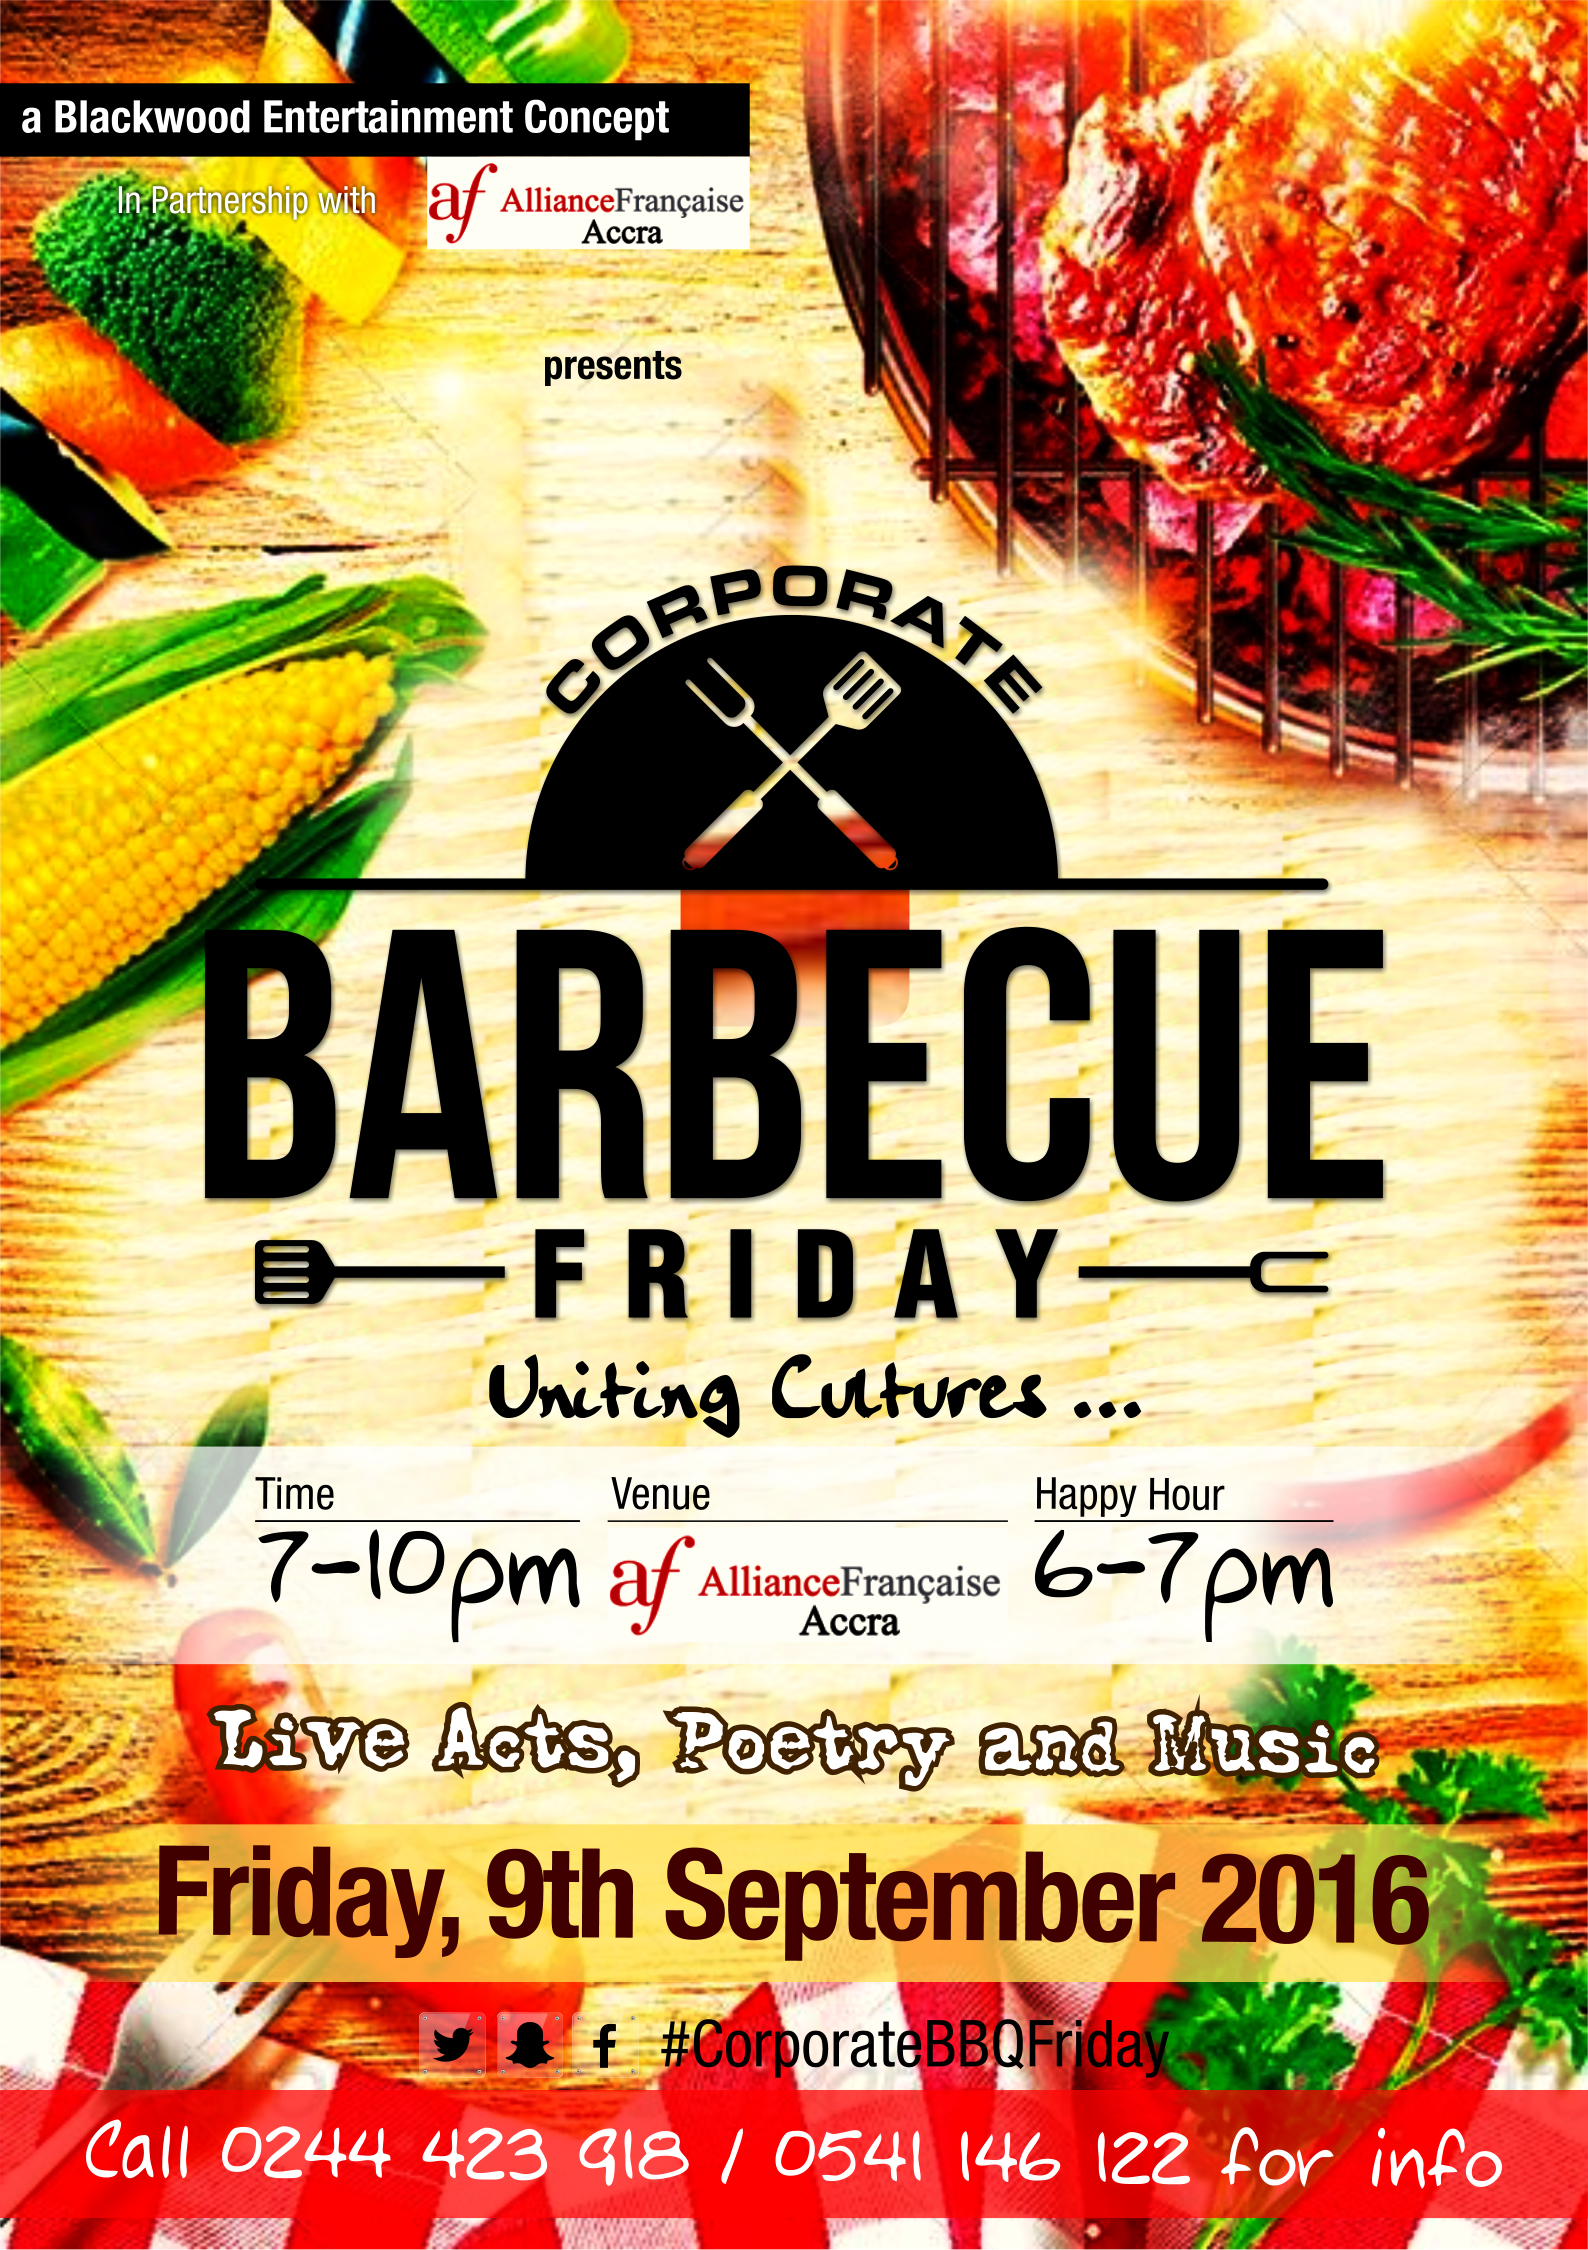 Networking & Barbecue : CORPORATE BARBECUE FRIDAY